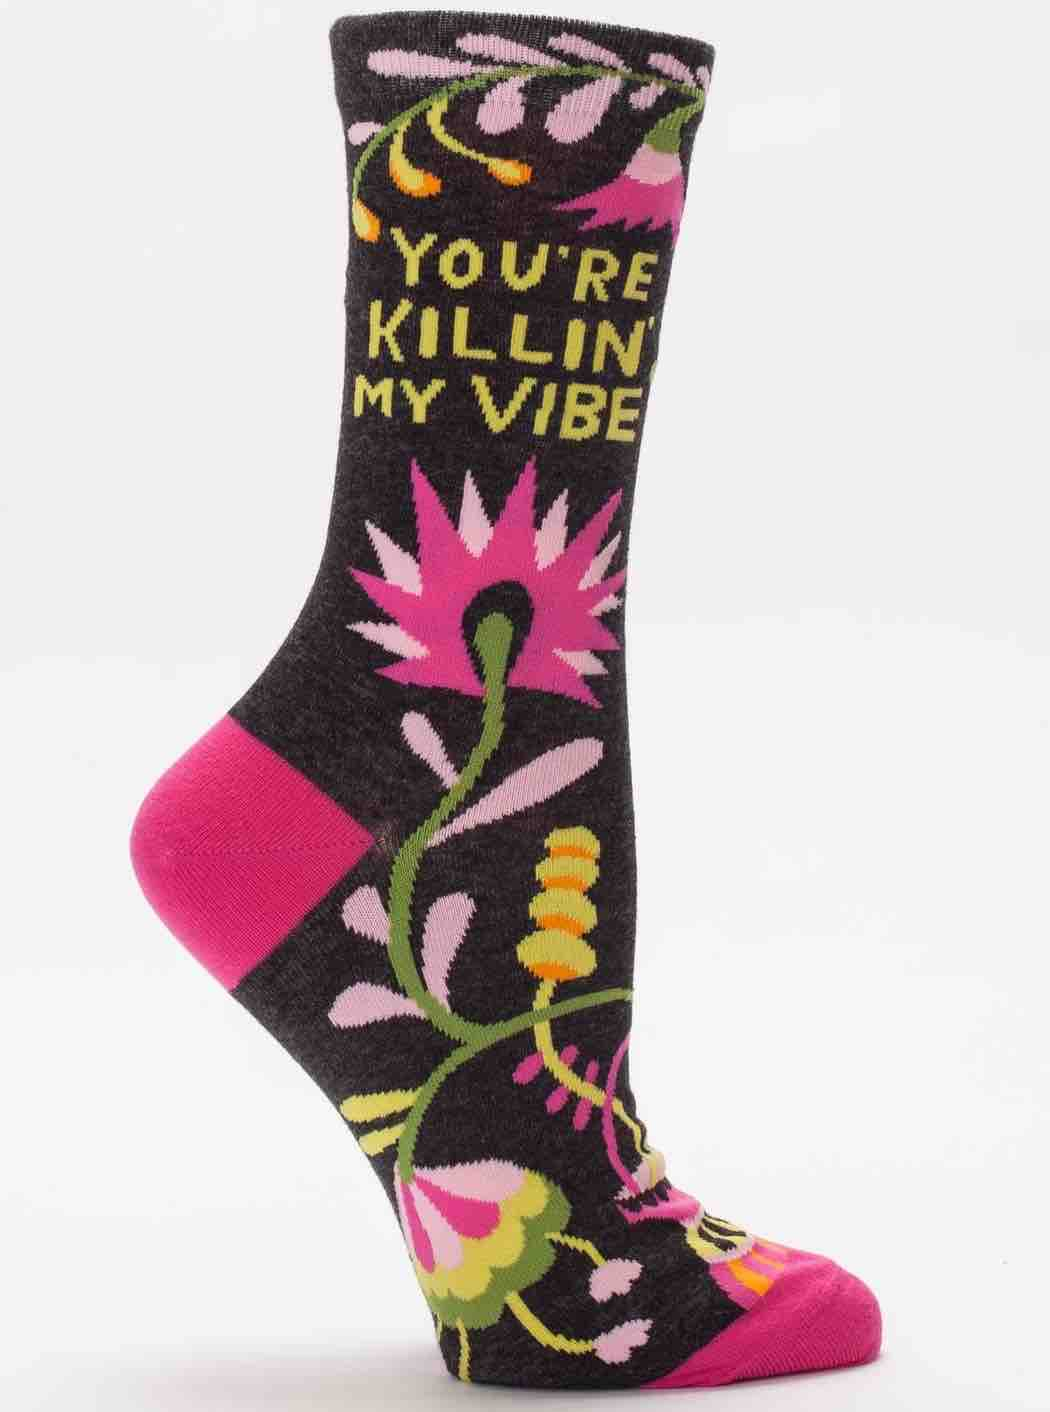 Blue Q Women's Crew Socks | Killing My Vibe